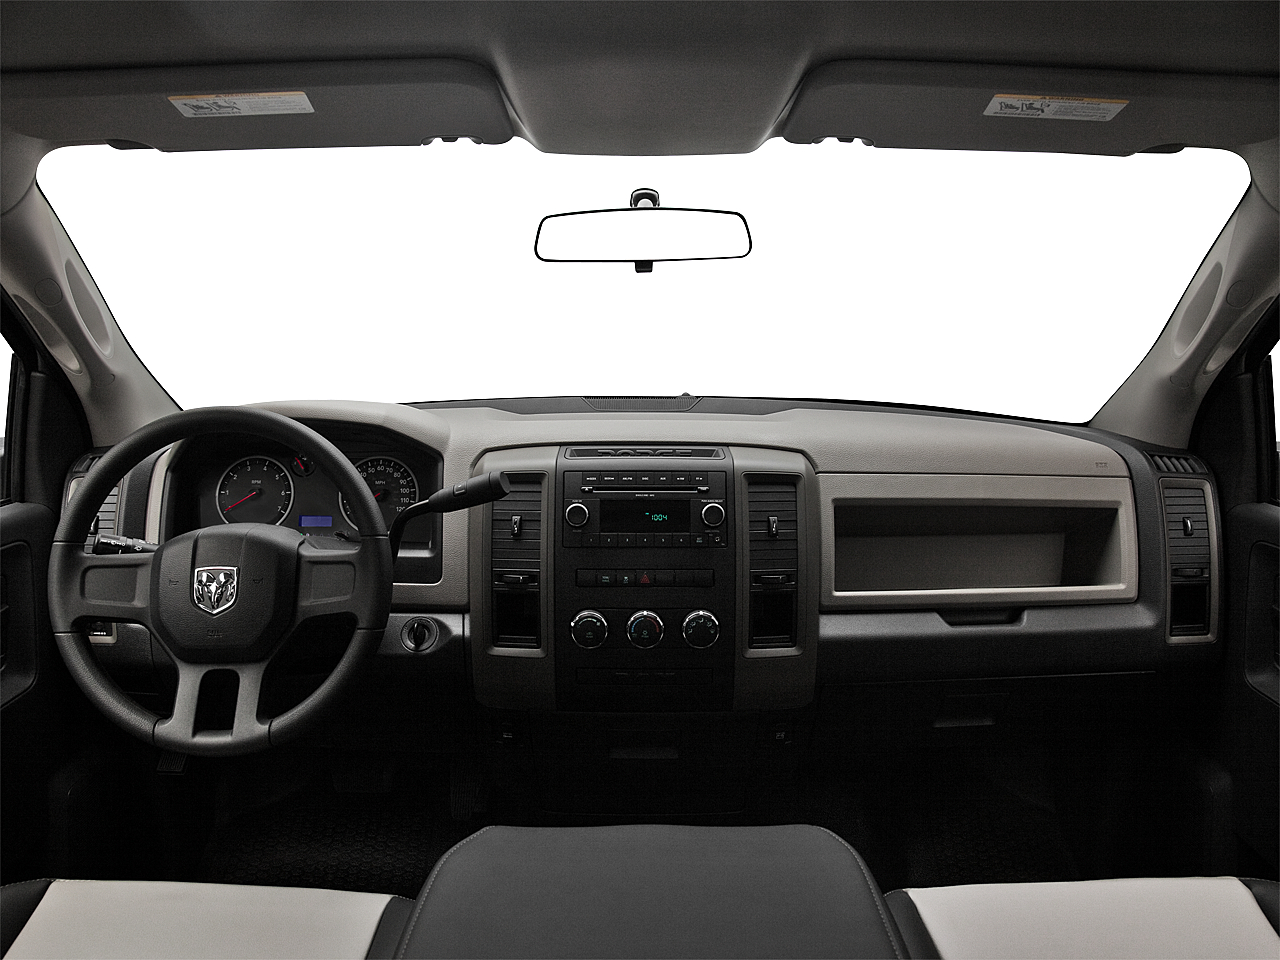 2011 Ram Trucks Ram 1500 ST, centered wide dash shot